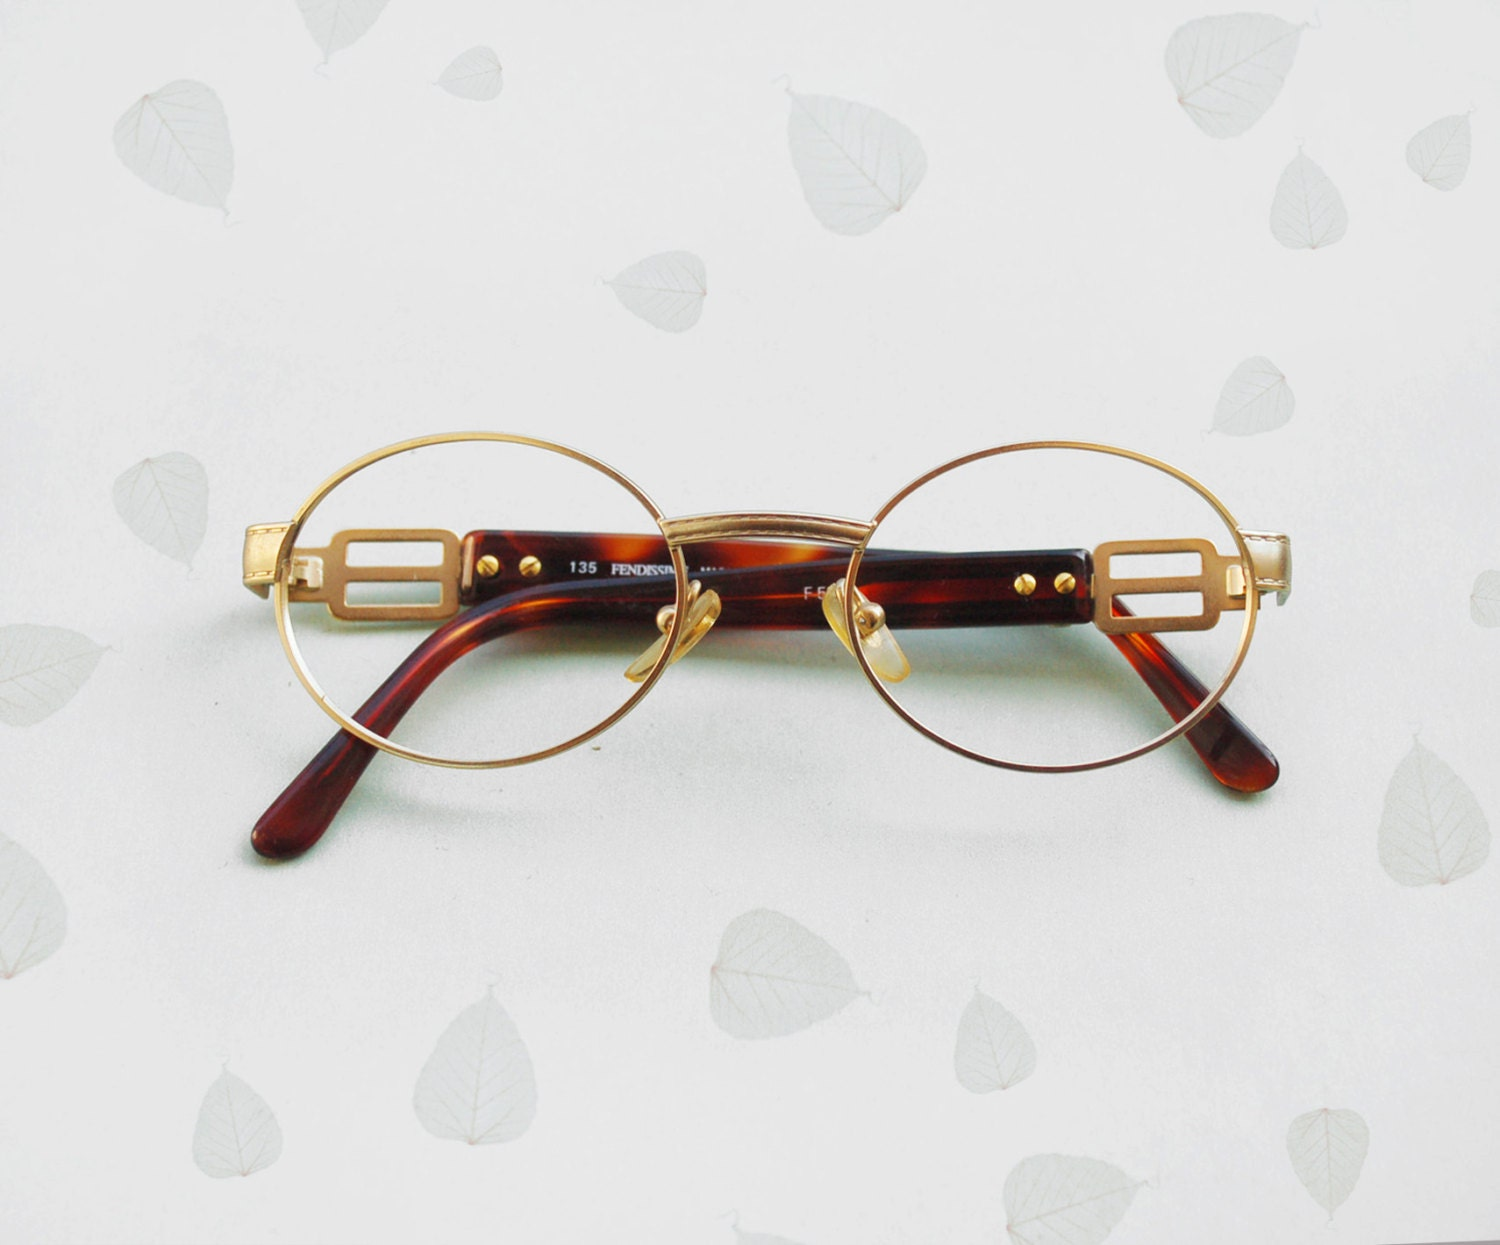 Gold Frame Vintage Glasses : FENDI Fendissime Frames eyeglasses / Vintage 90s gold filled